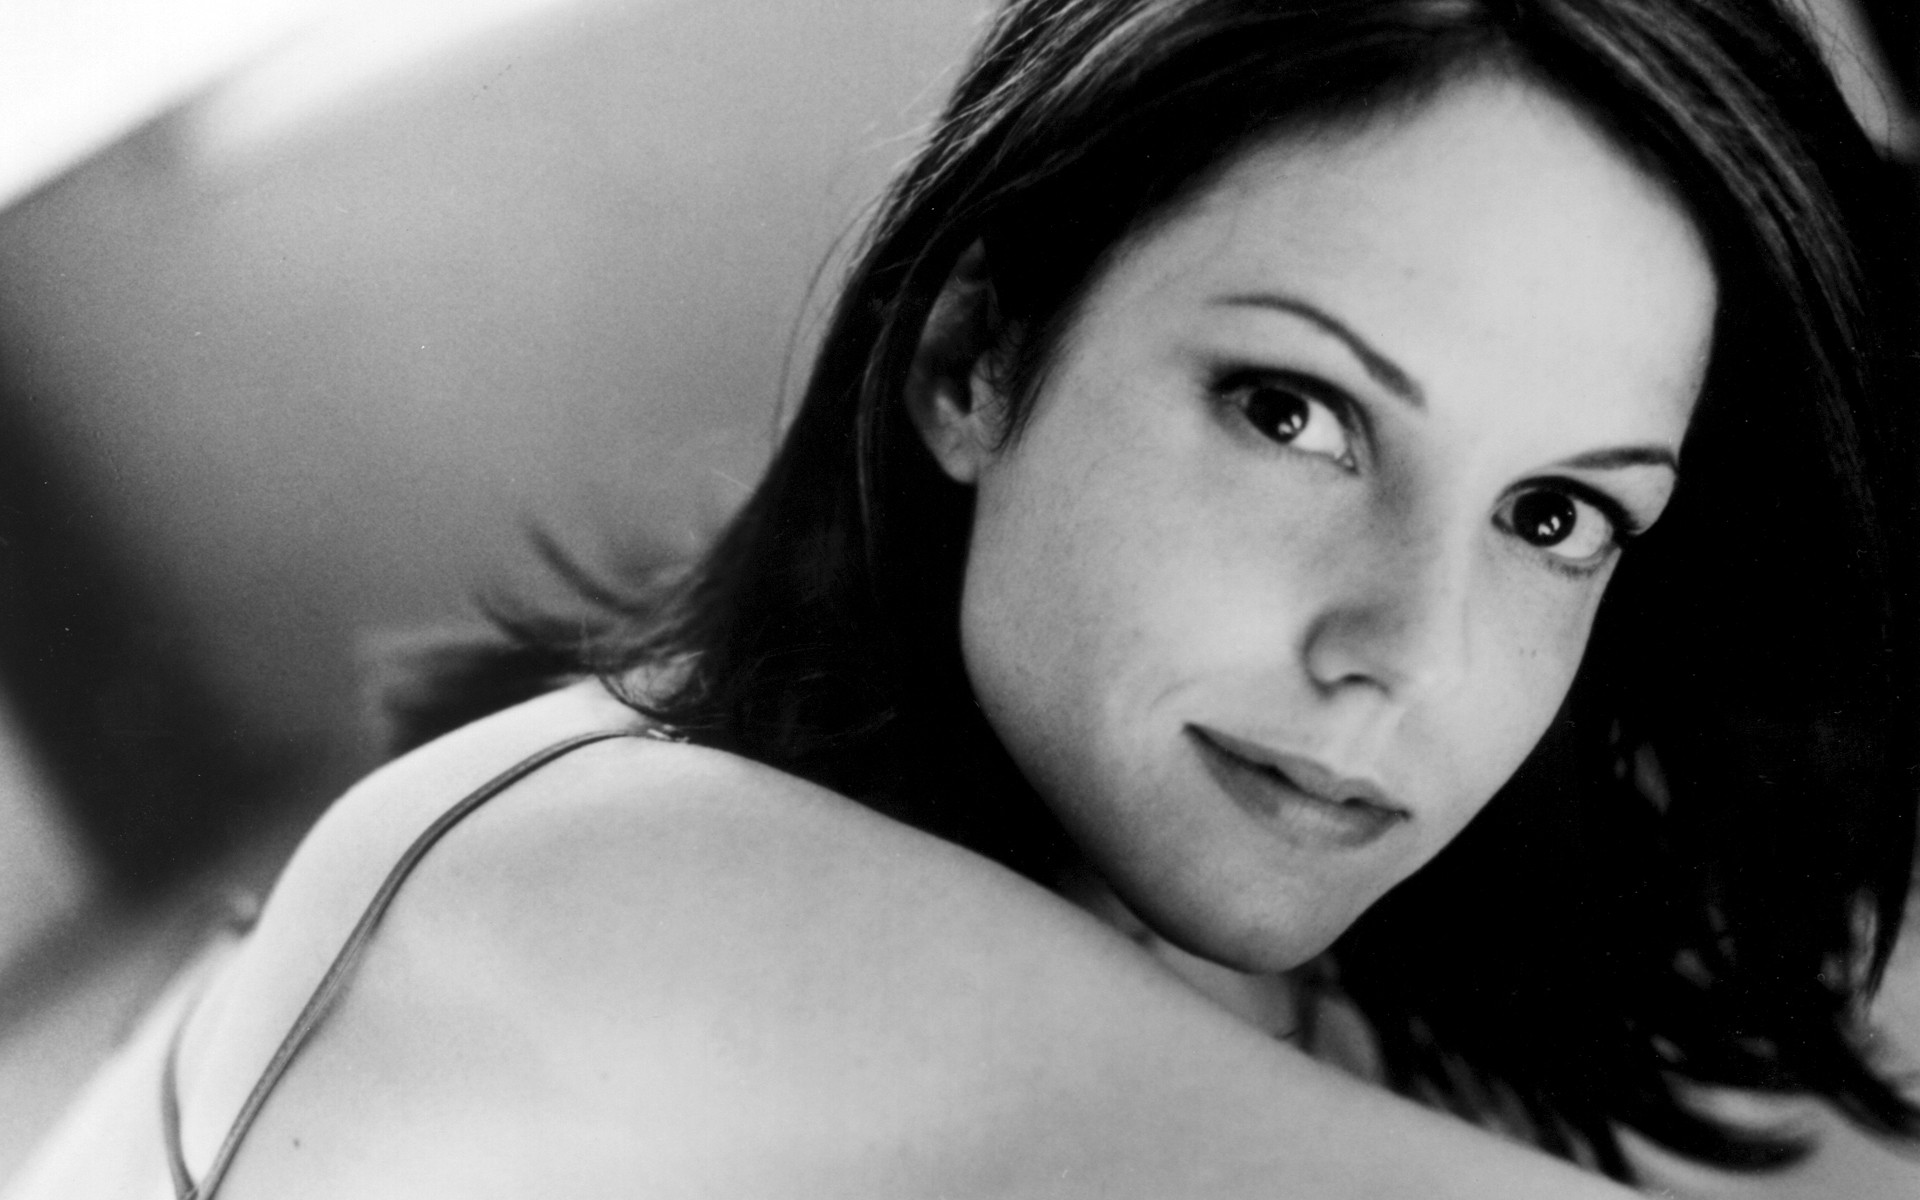 1920x1200 - Mary-Louise Parker Wallpapers 21